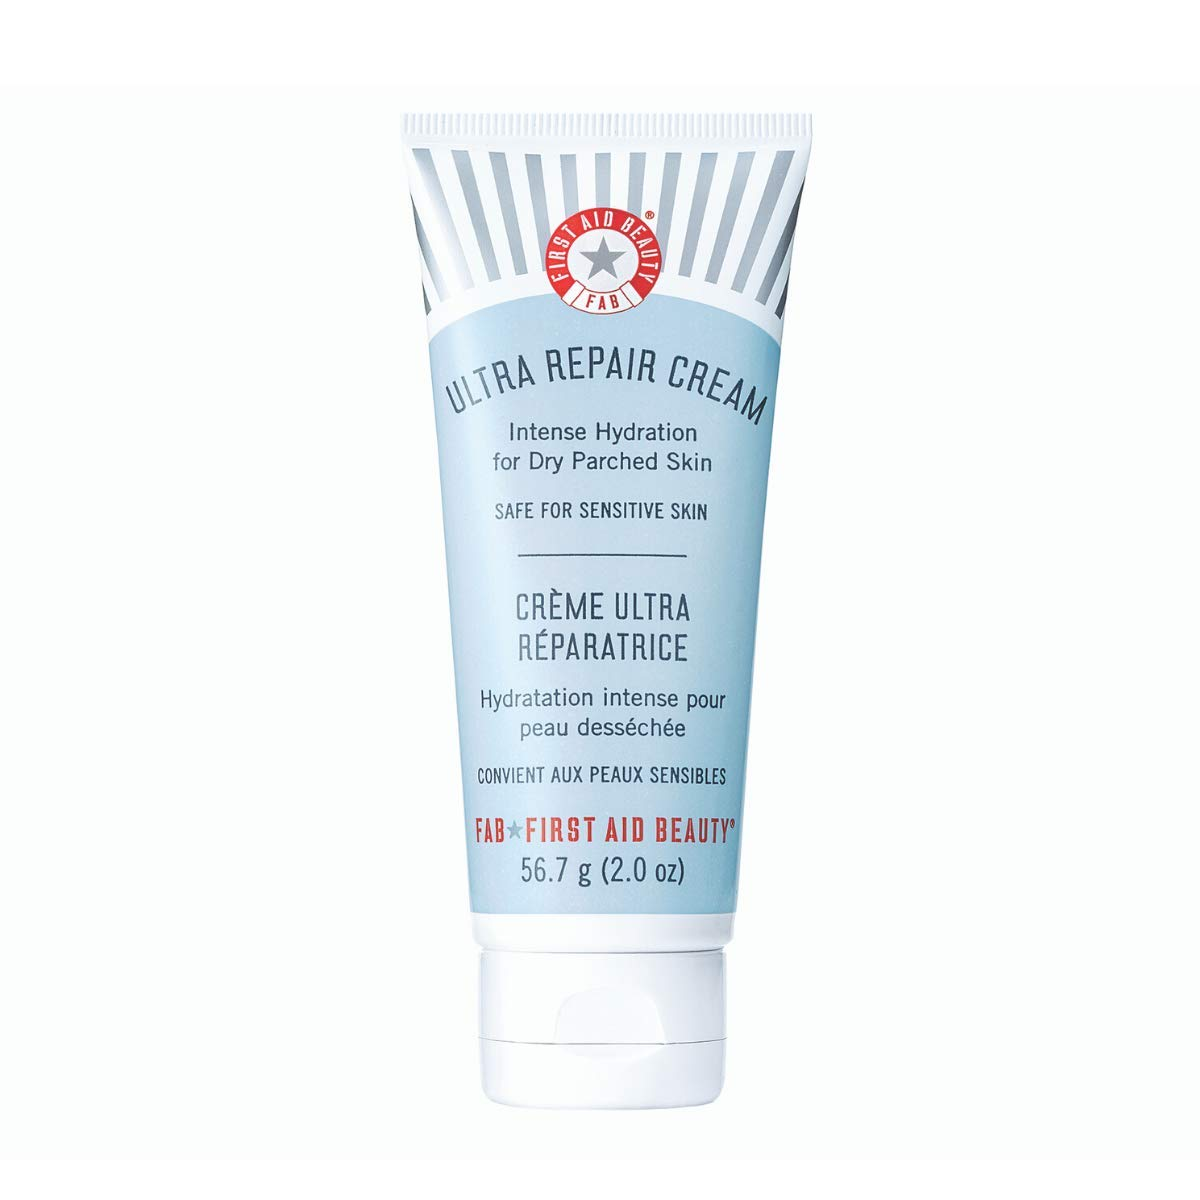 First Aid Beauty Ultra Repair Cruelty-Free Facial Cream